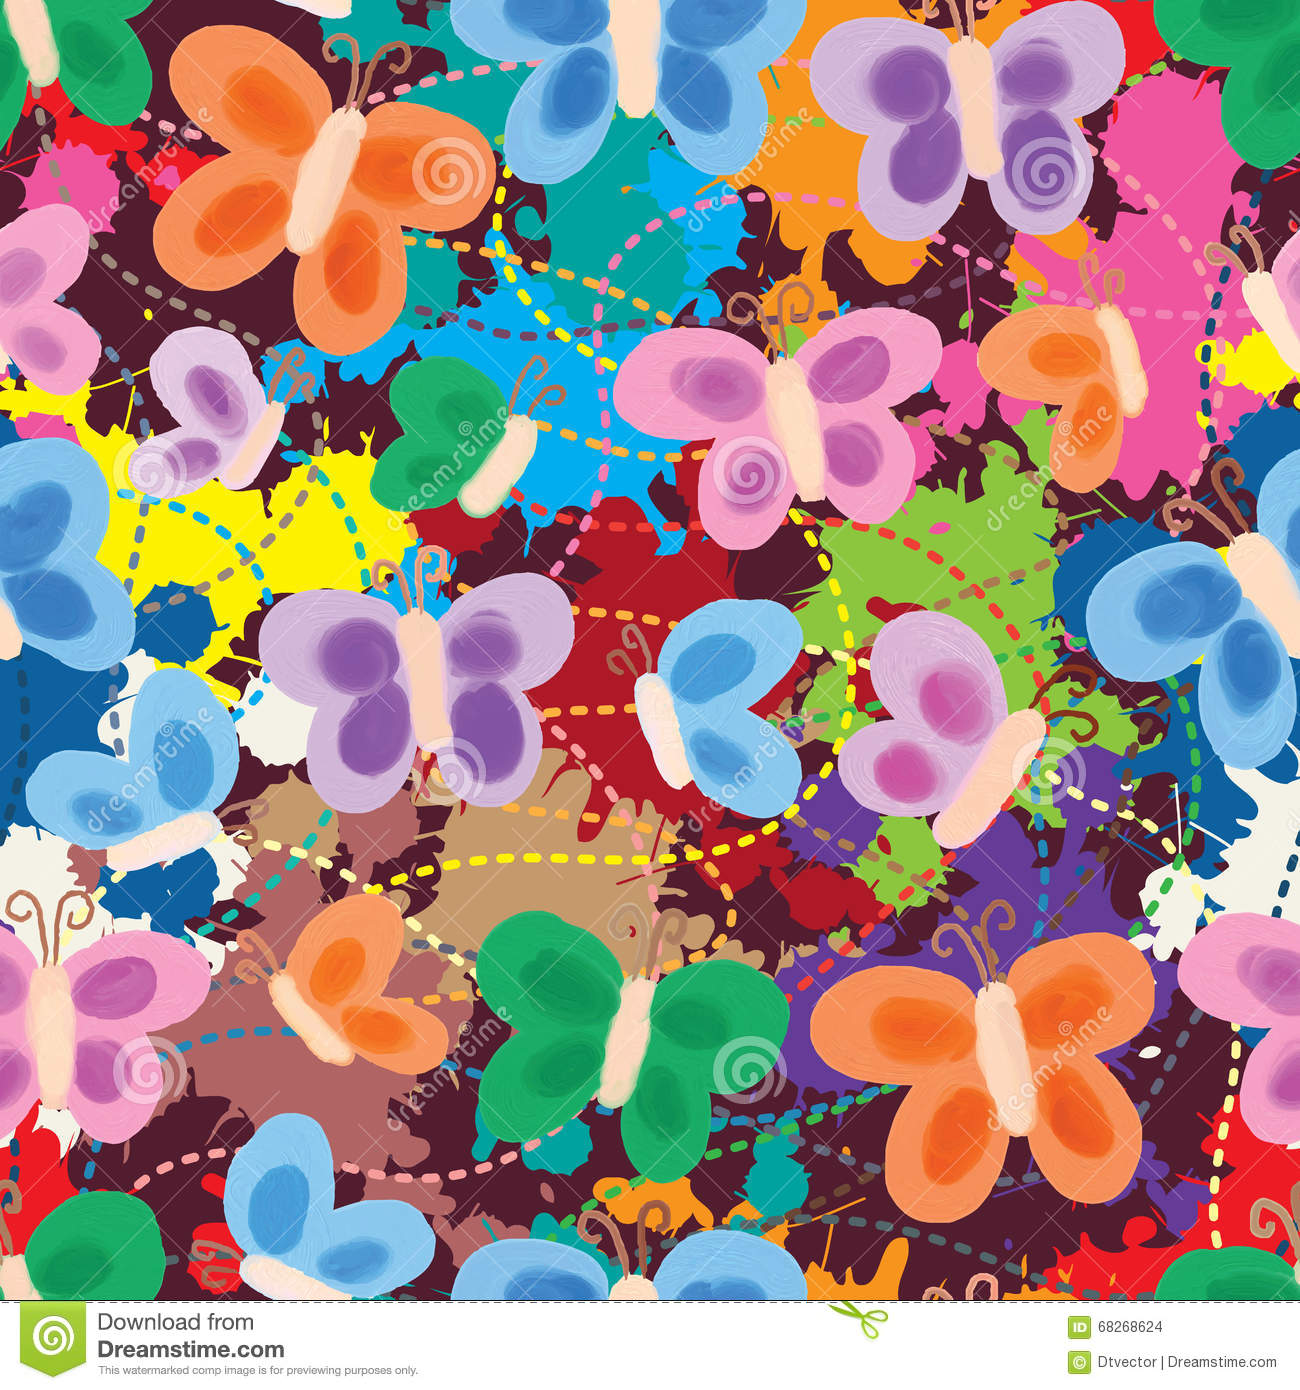 Butterfly painting style drawing seamless pattern